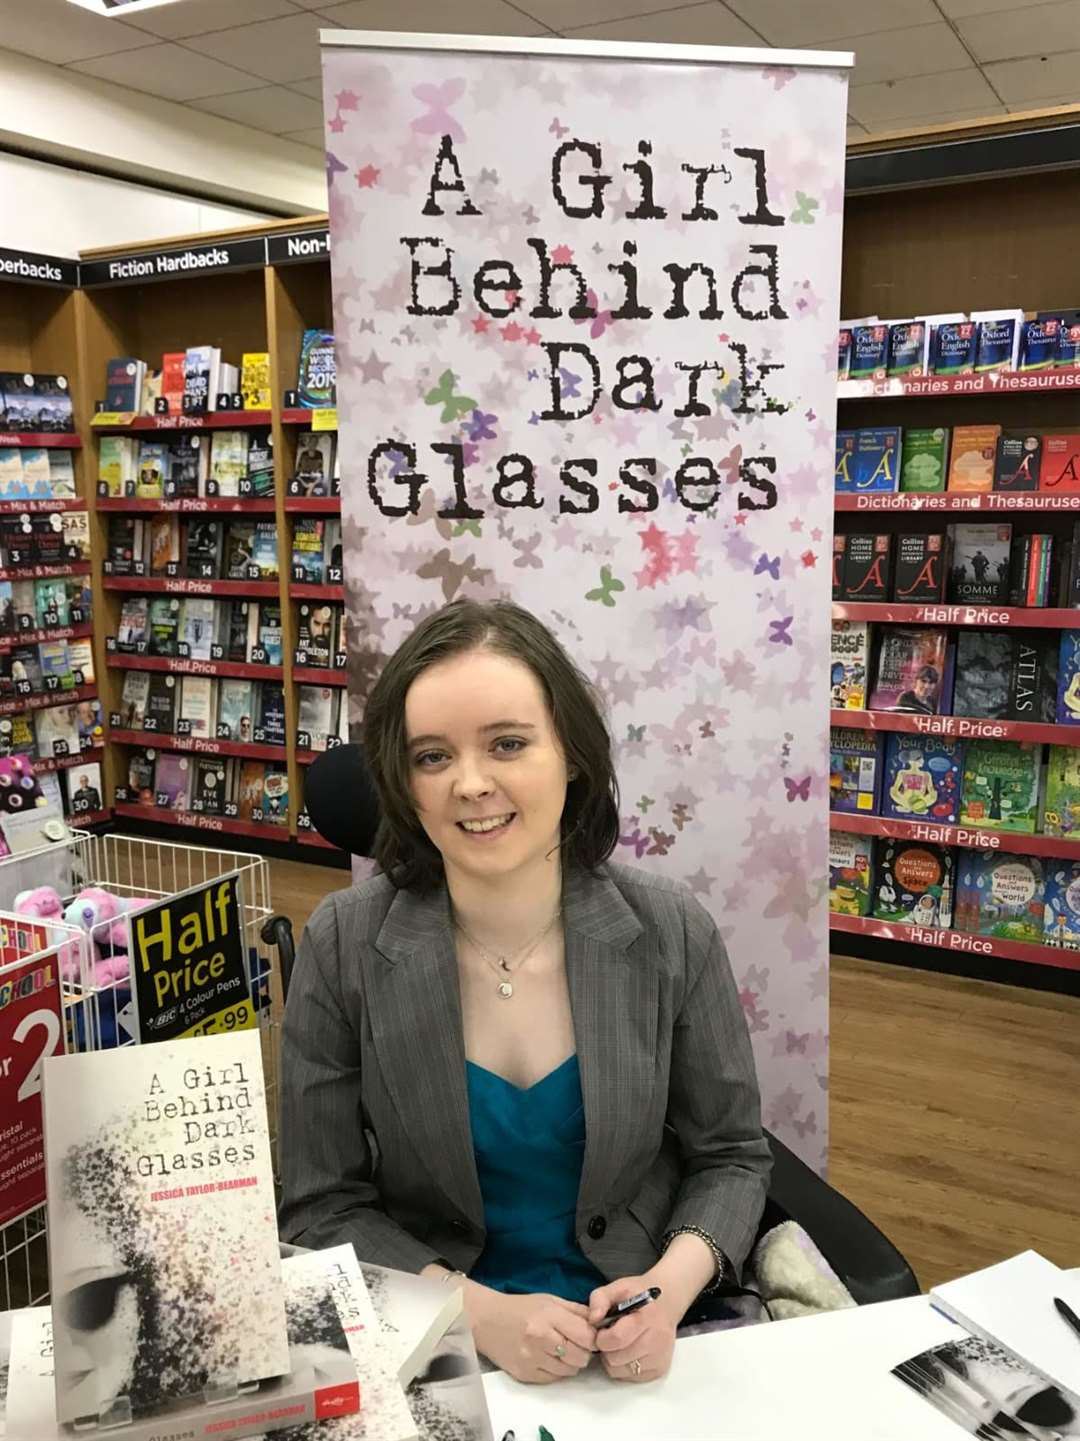 Jessica-Taylor Bearman is an award-winning author after her book A Girl Behind Dark Glasses won at the People's Book Prize